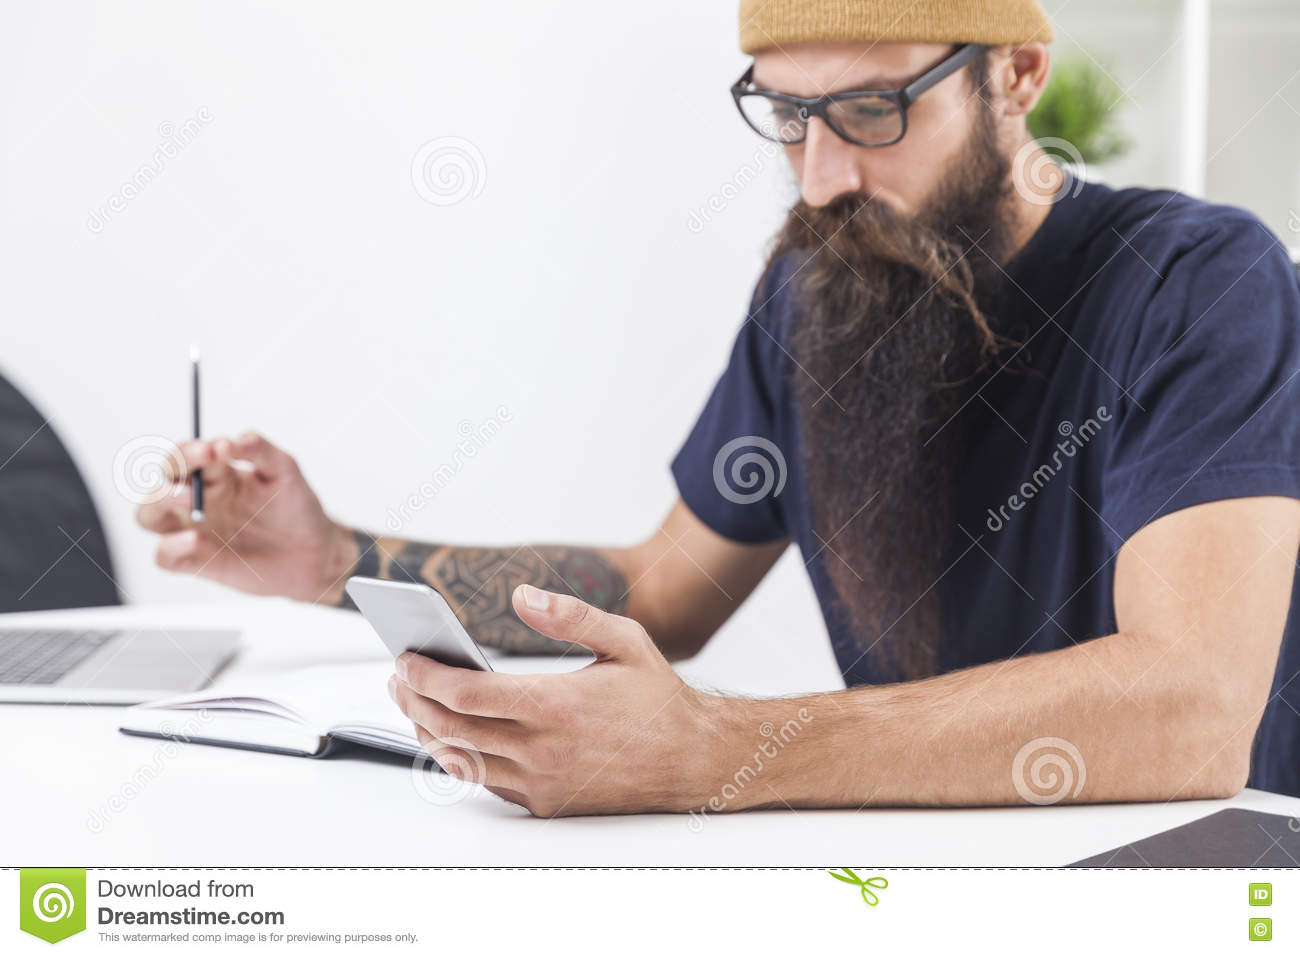 Bearded hipster is looking at his mobile